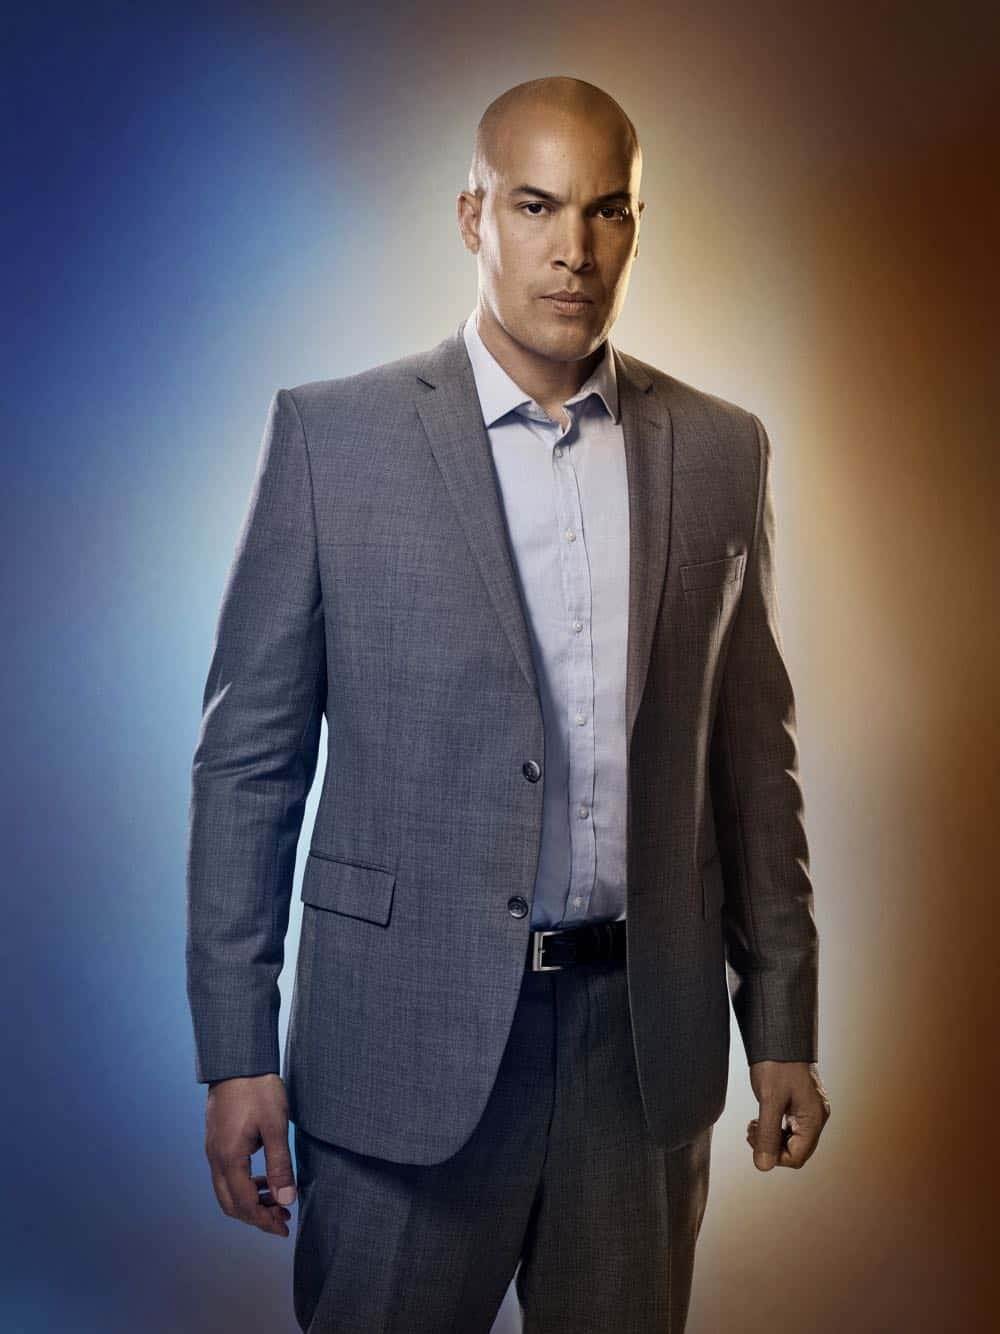 THE GIFTED:  Coby Bell as Jace Turner in Season Two of THE GIFTED airing Tuesday, Sept. 25 (8:00-9:00 PM ET/PT) on FOX. ©2018 Fox Broadcasting Co. Cr:  Justin Stephens/FOX